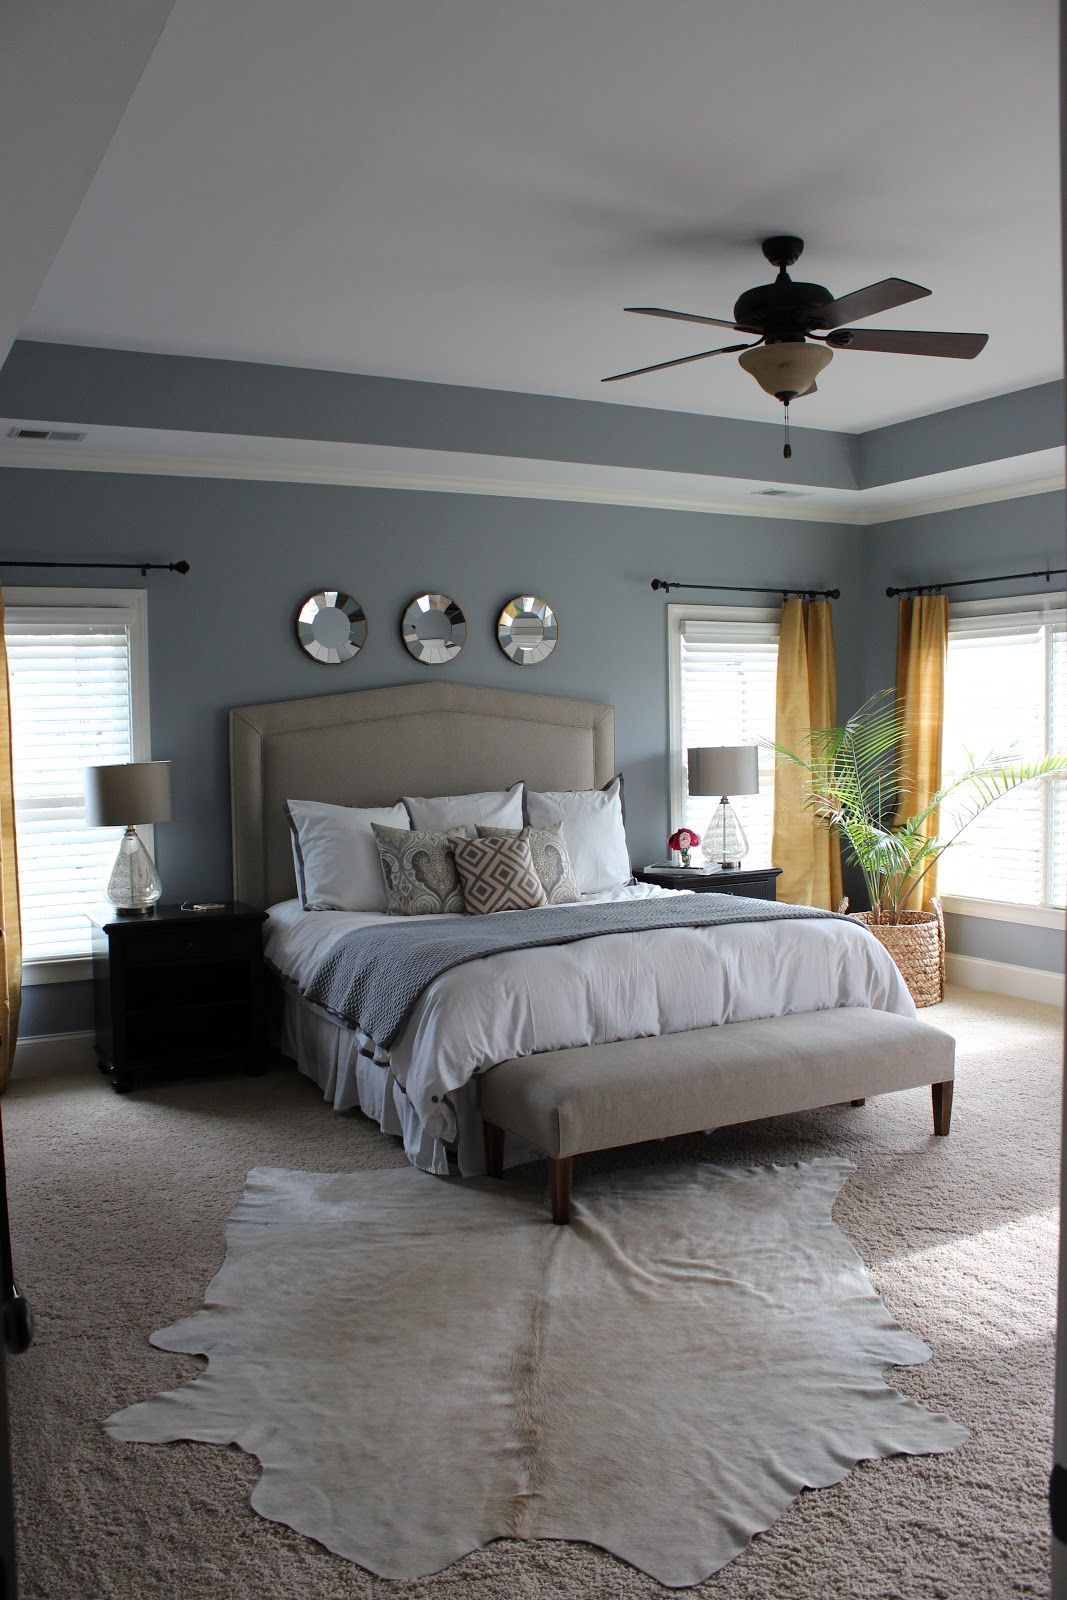 Ailey Bedroom Furniture Collection - furniture - Macy's ...